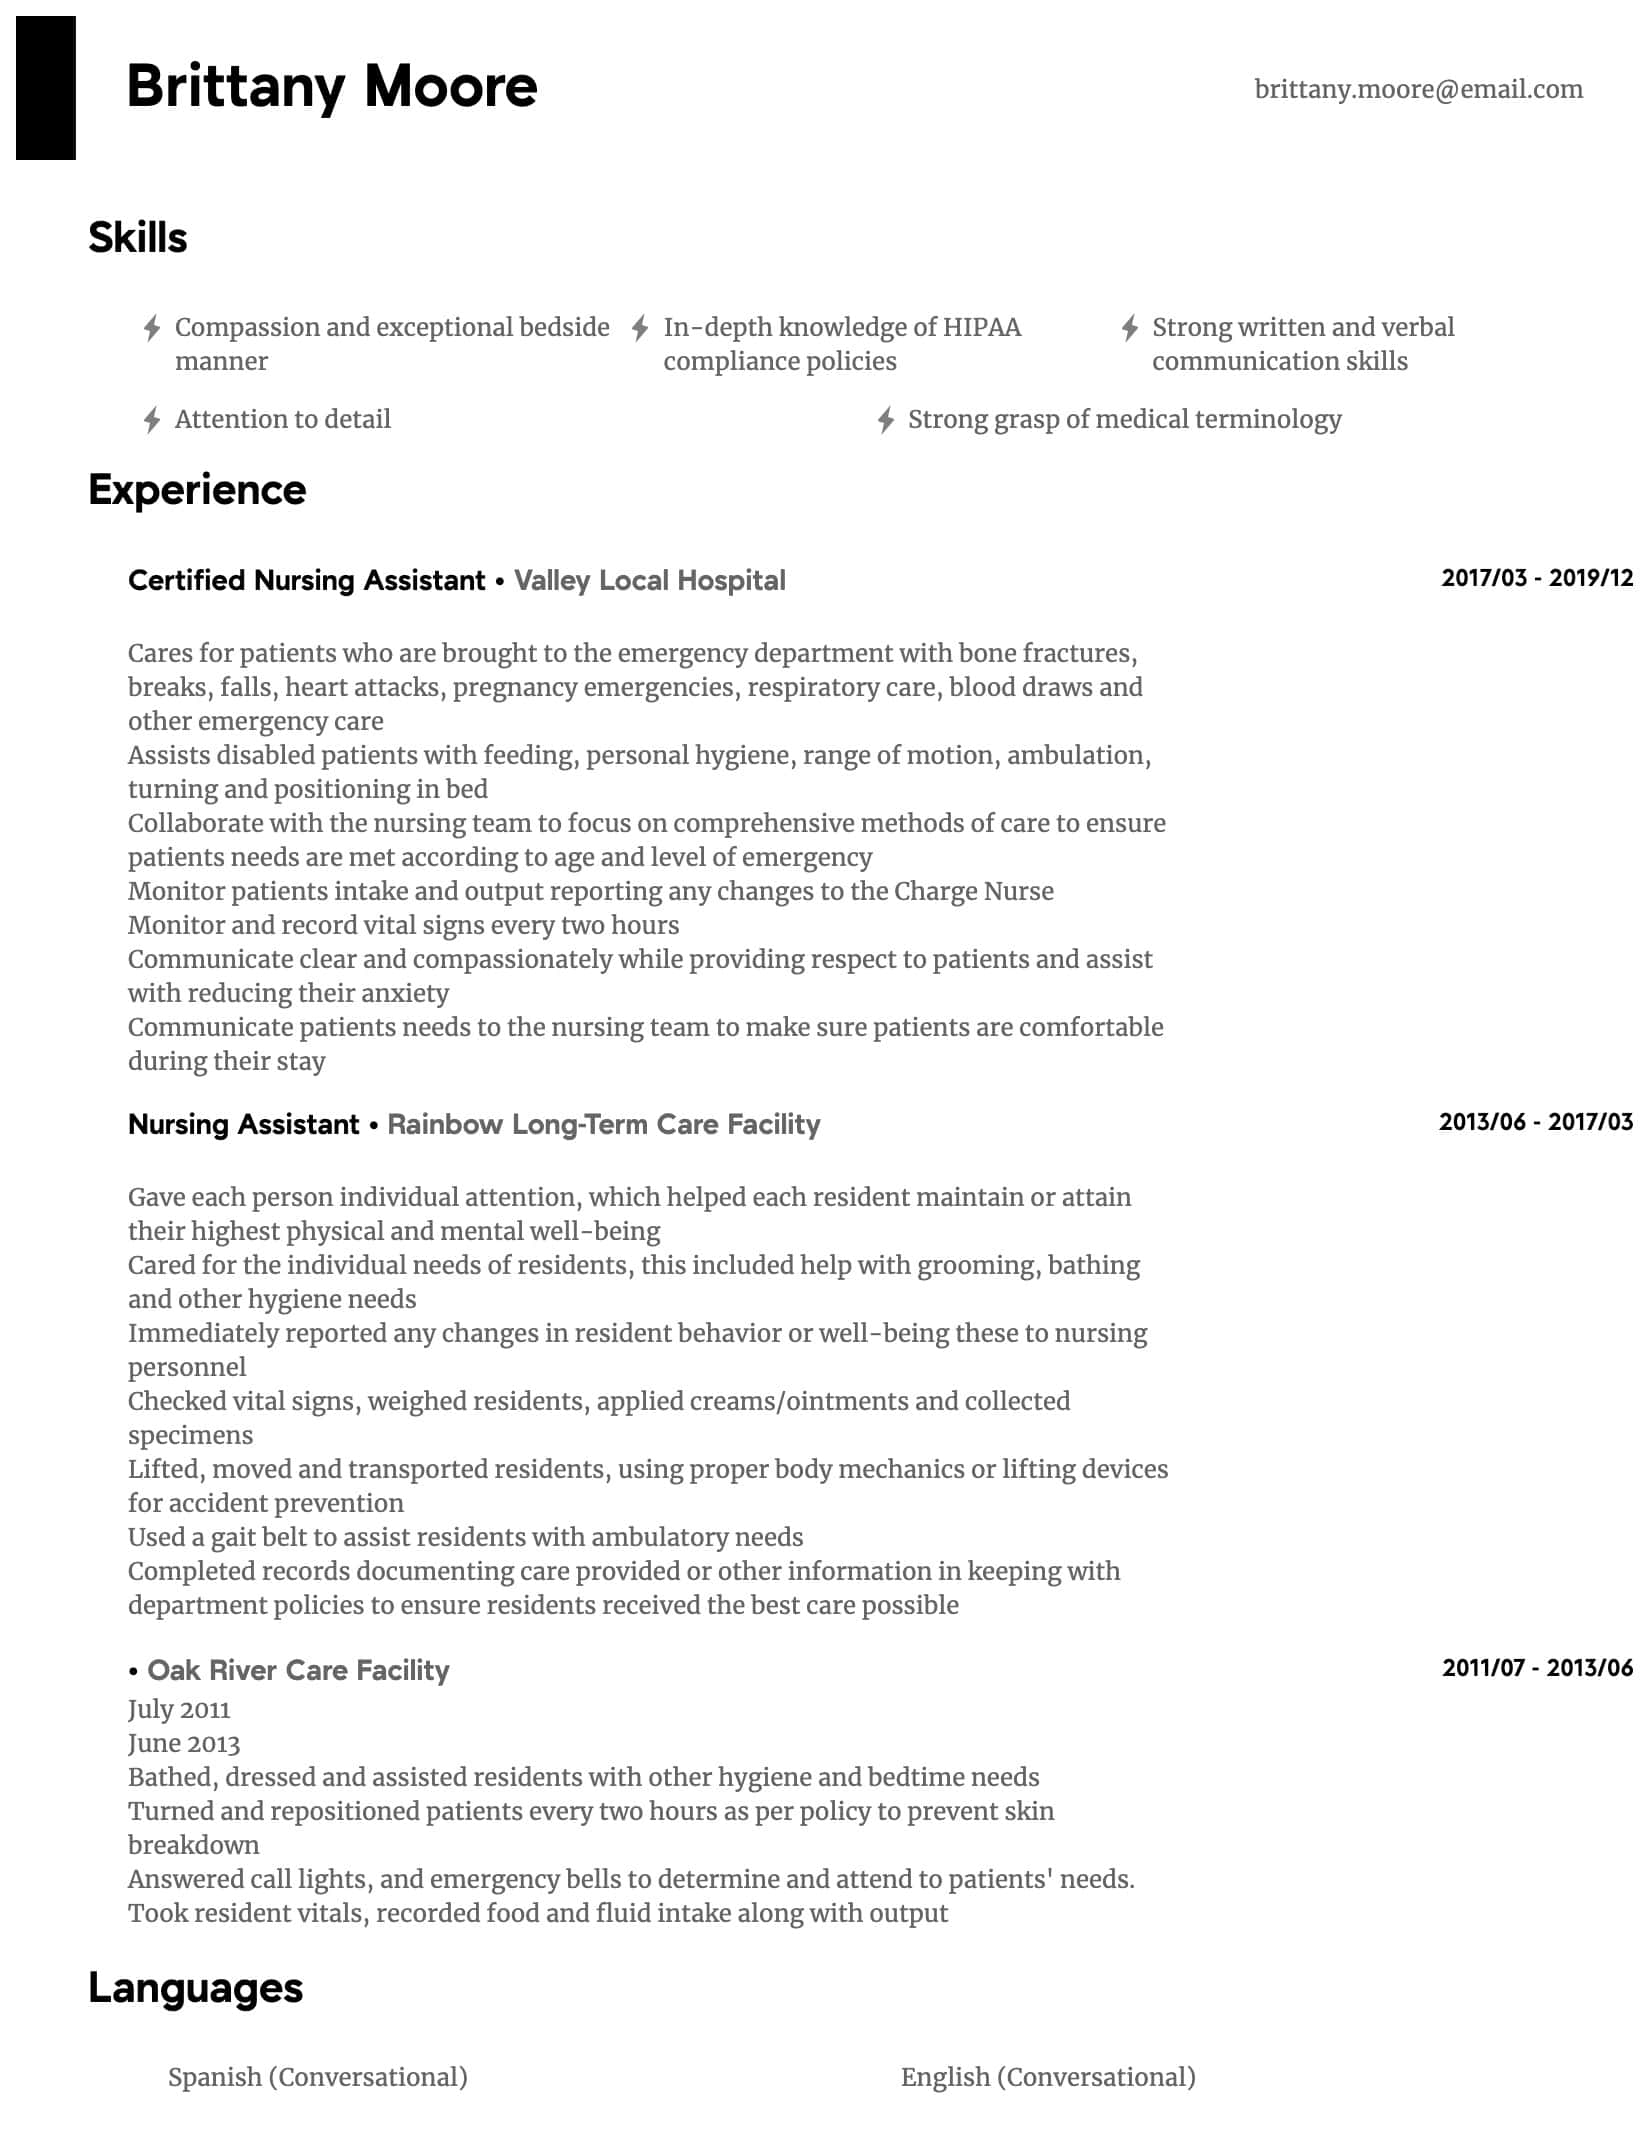 nursing assistant resume samples all experience levels cna examples intermediate for Resume Cna Resume Examples 2020